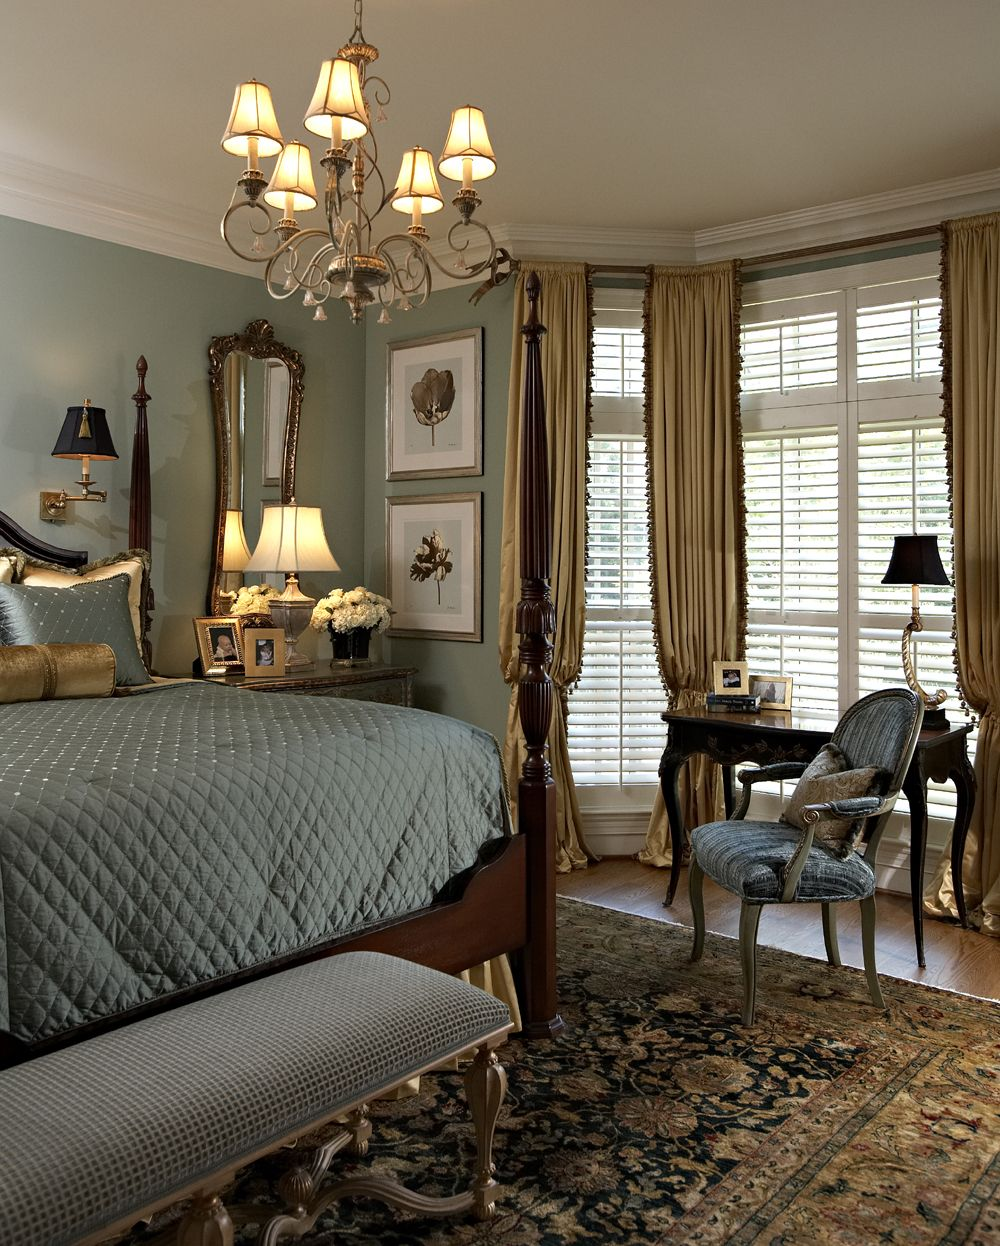 Pin By Lynn O On Bedroom Traditional Bedroom Design Traditional